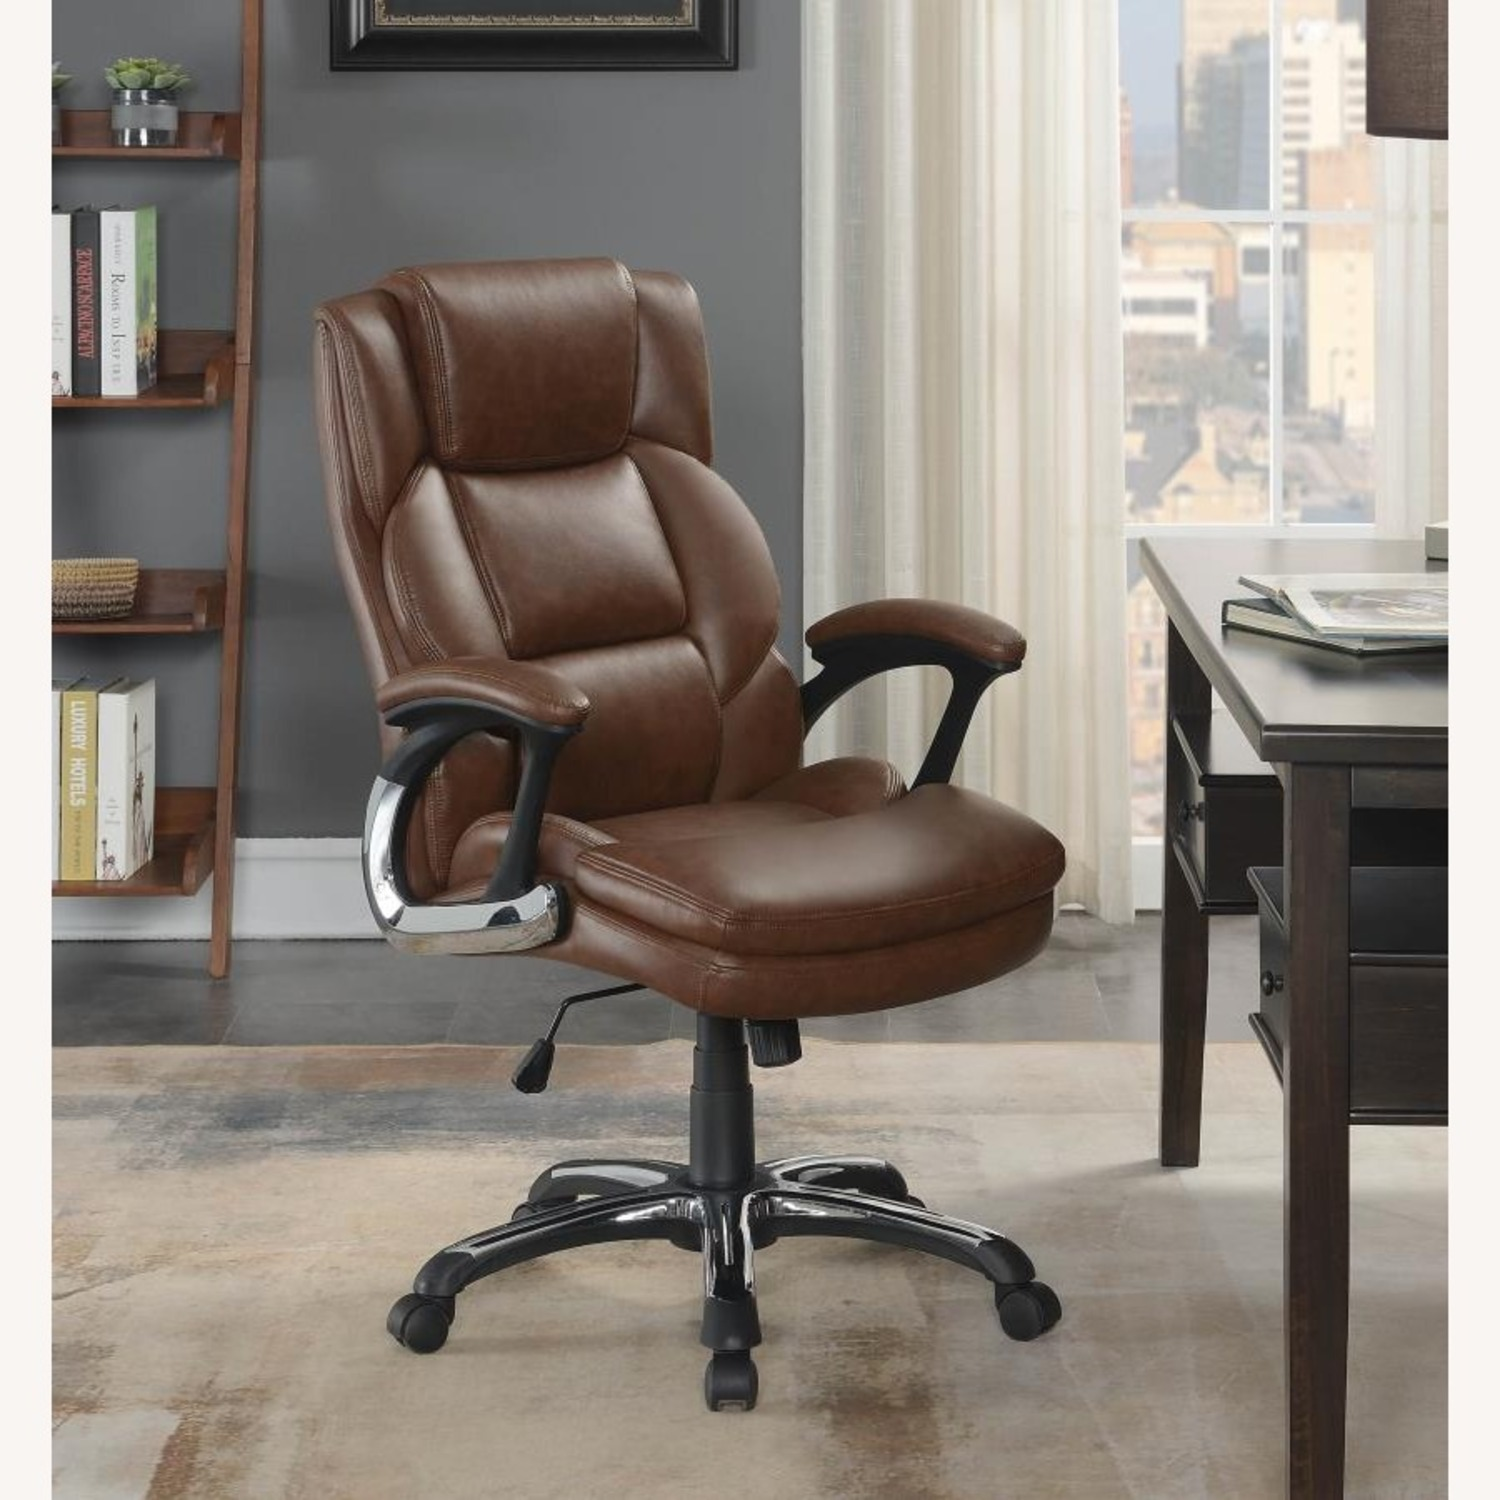 Office Chair In Tufted Brown Leatherette Finish - image-7